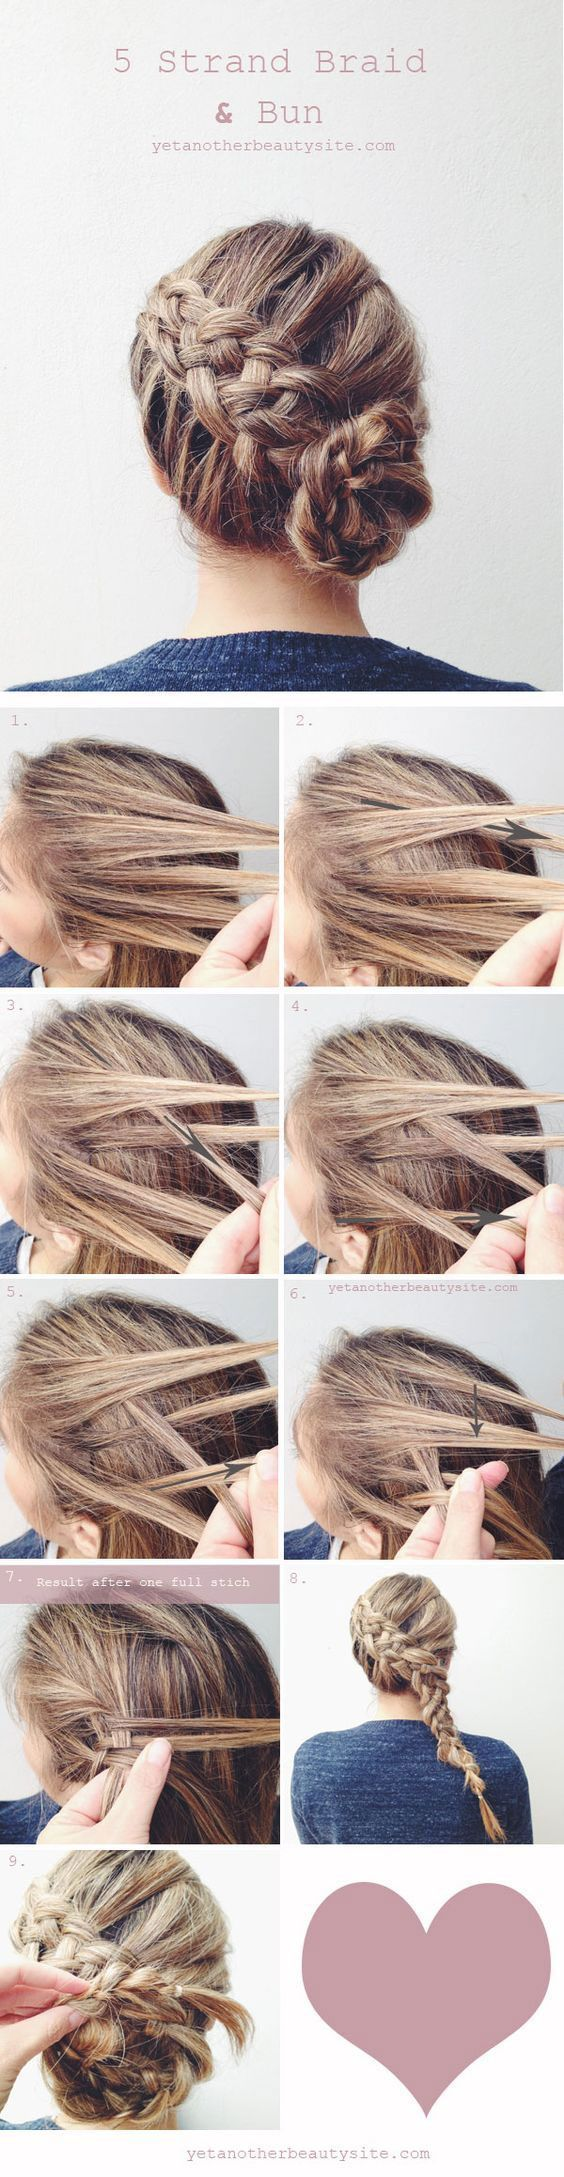 20 Creative Dutch Braid Tutorials You Need To Try … – #boxerbraids #Braid #Creative #Dutch #Tutorials